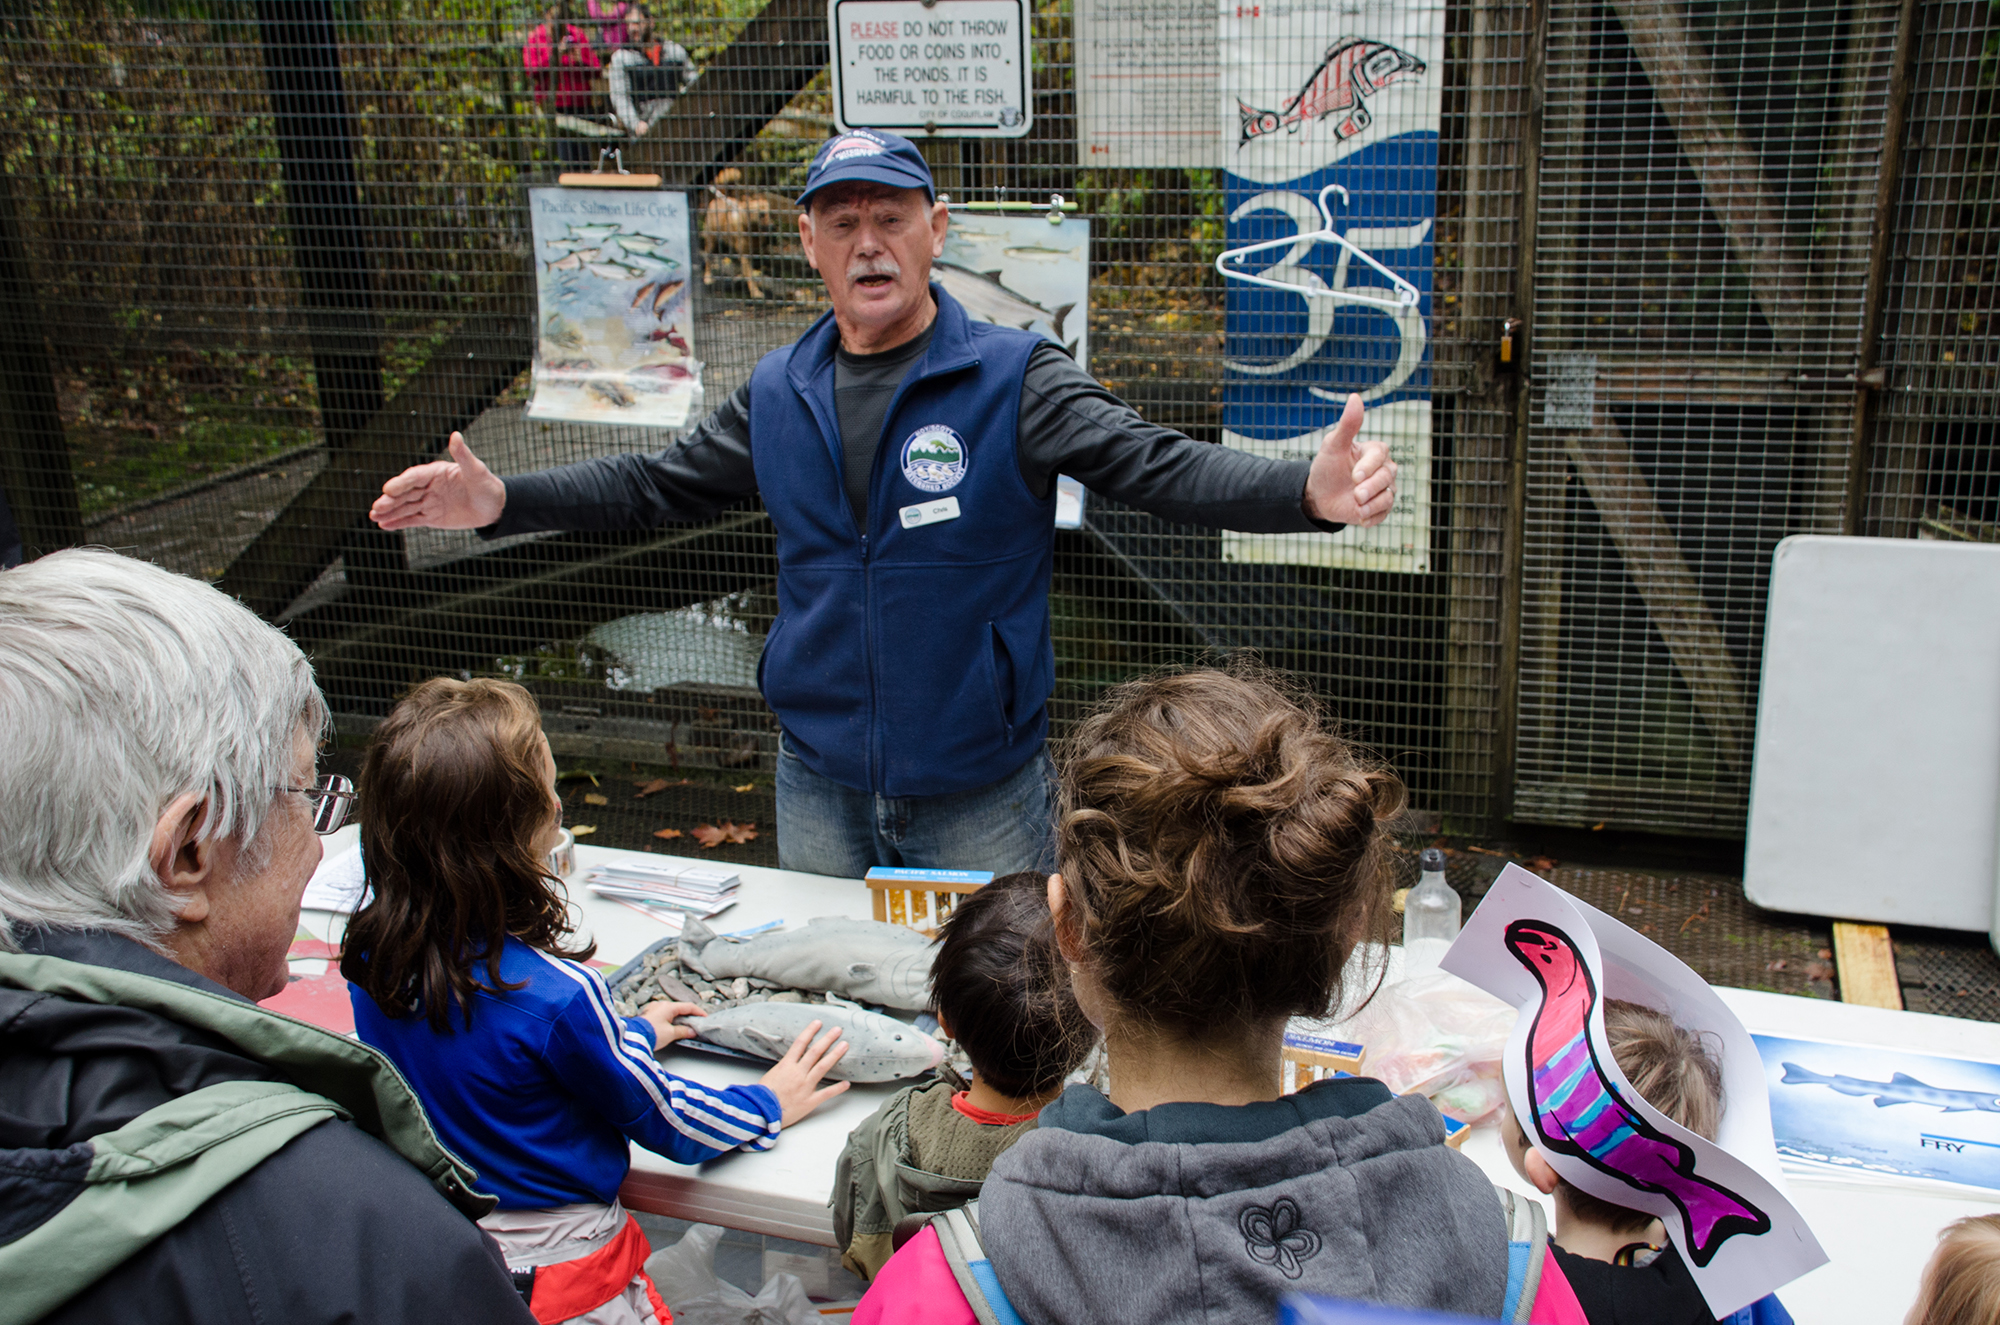 Salmon educator and HSWS founding member, Chris Hamming. (City of Coquitlam photo)